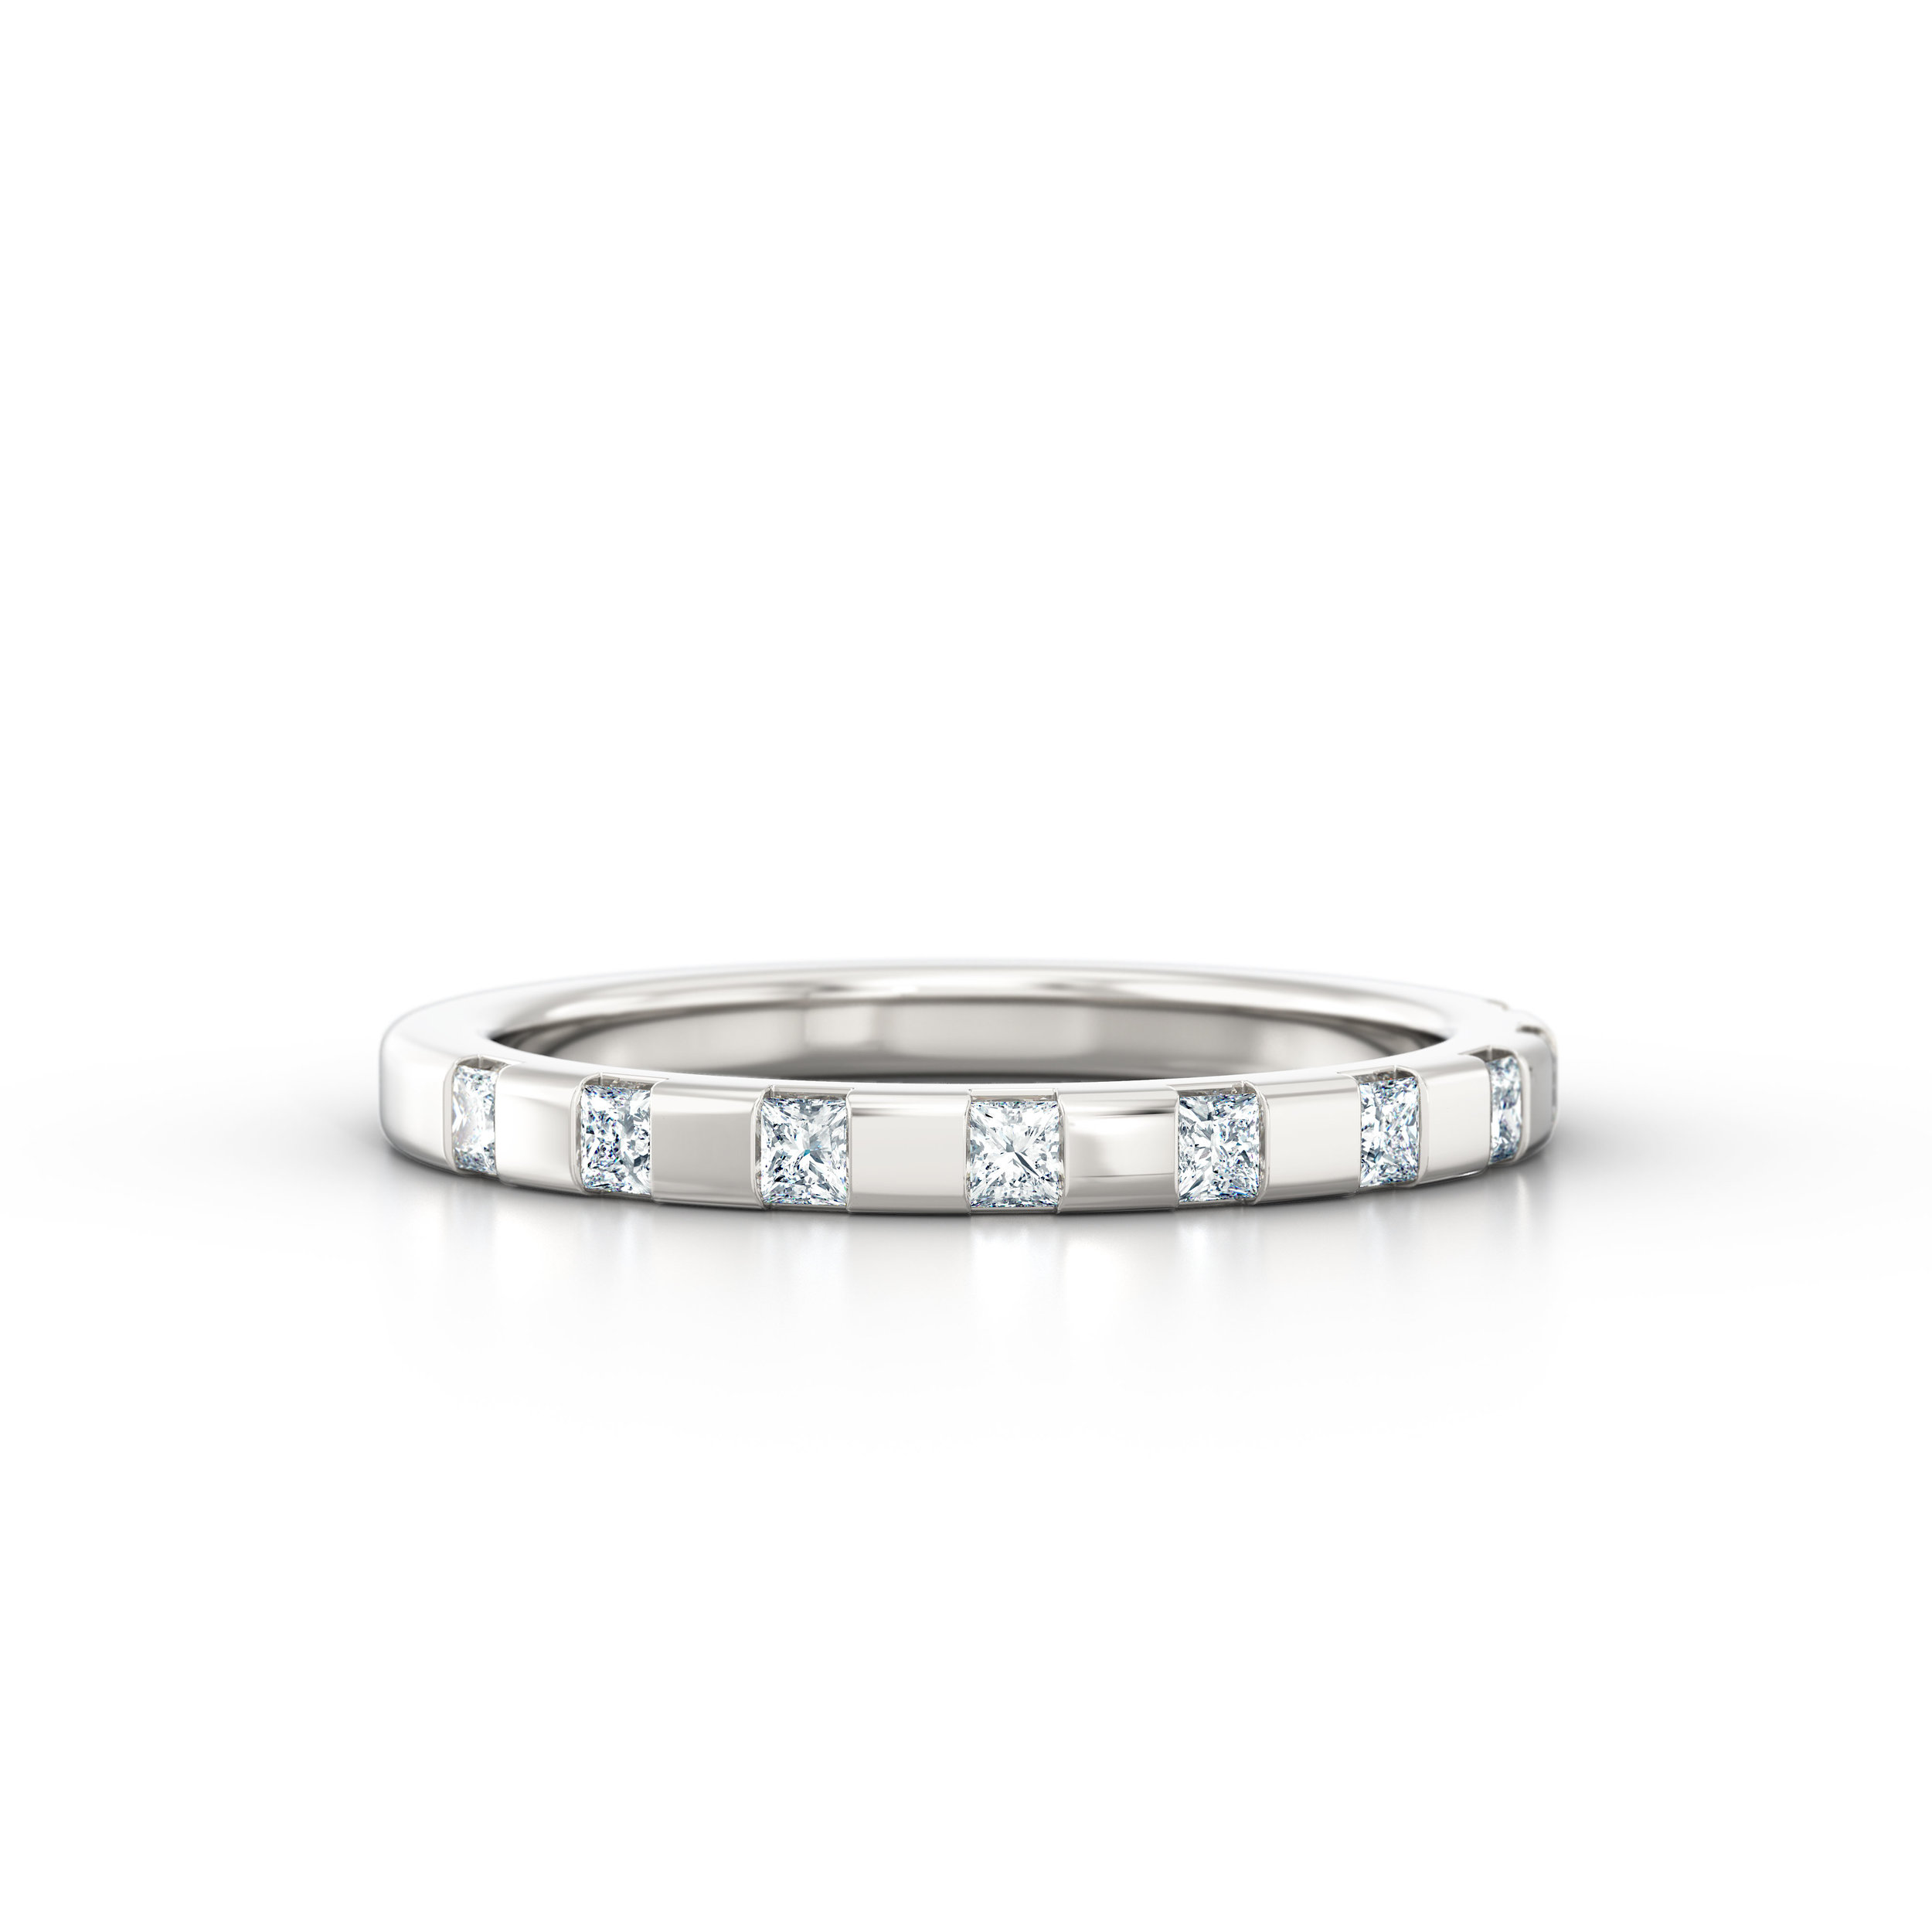 Off-set Princess Cut Eternity Ring | Hatton Garden